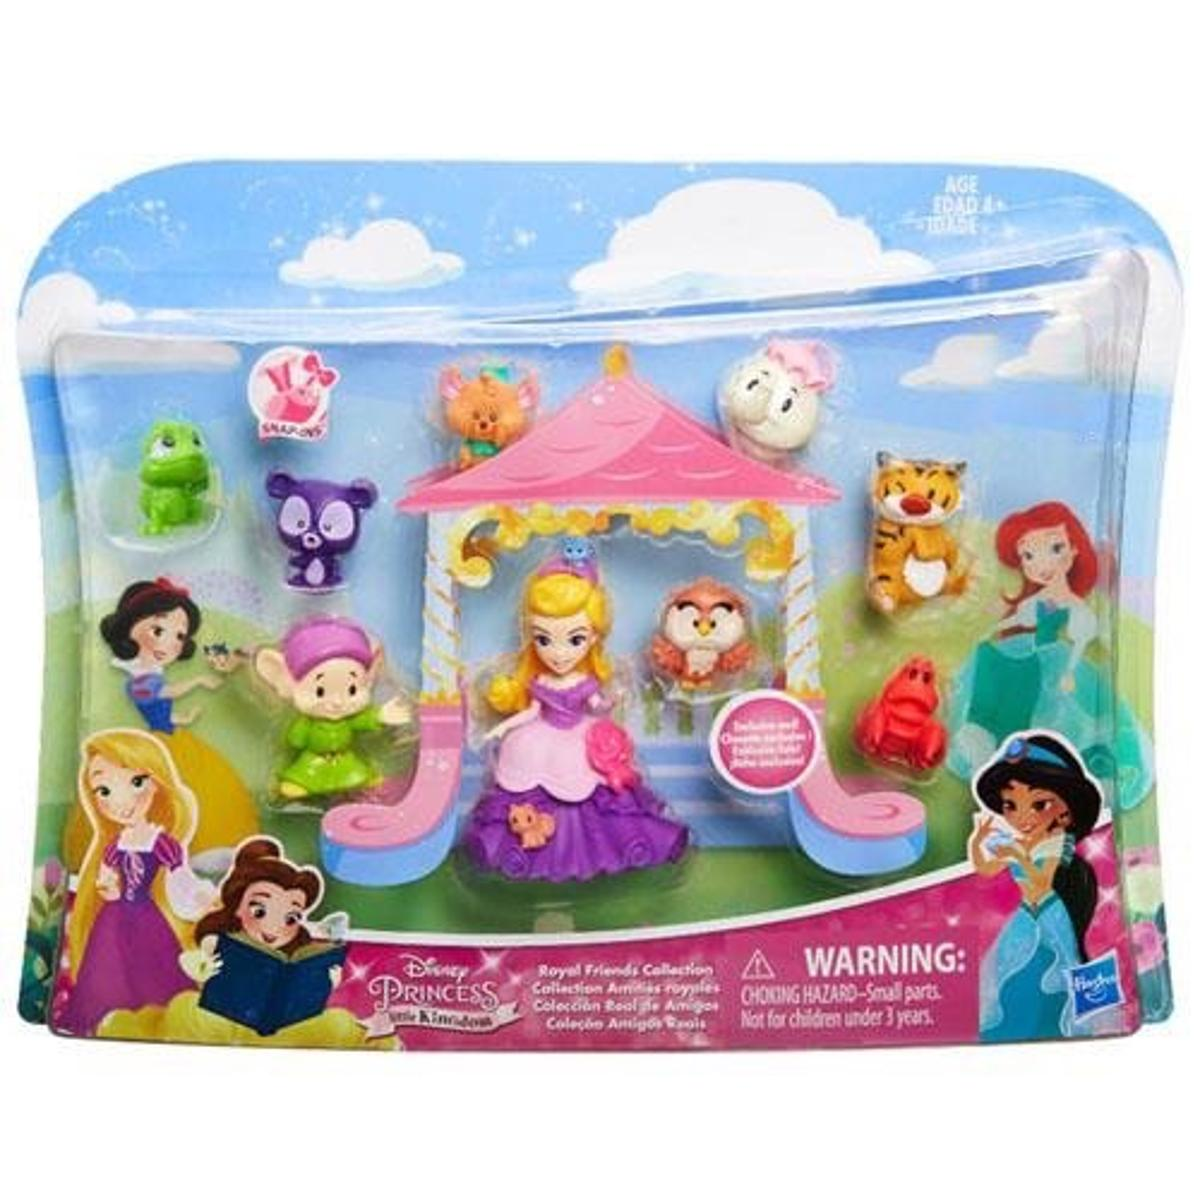 Disney Princess Little kingdom Royal Friends 9 PC Figure Set